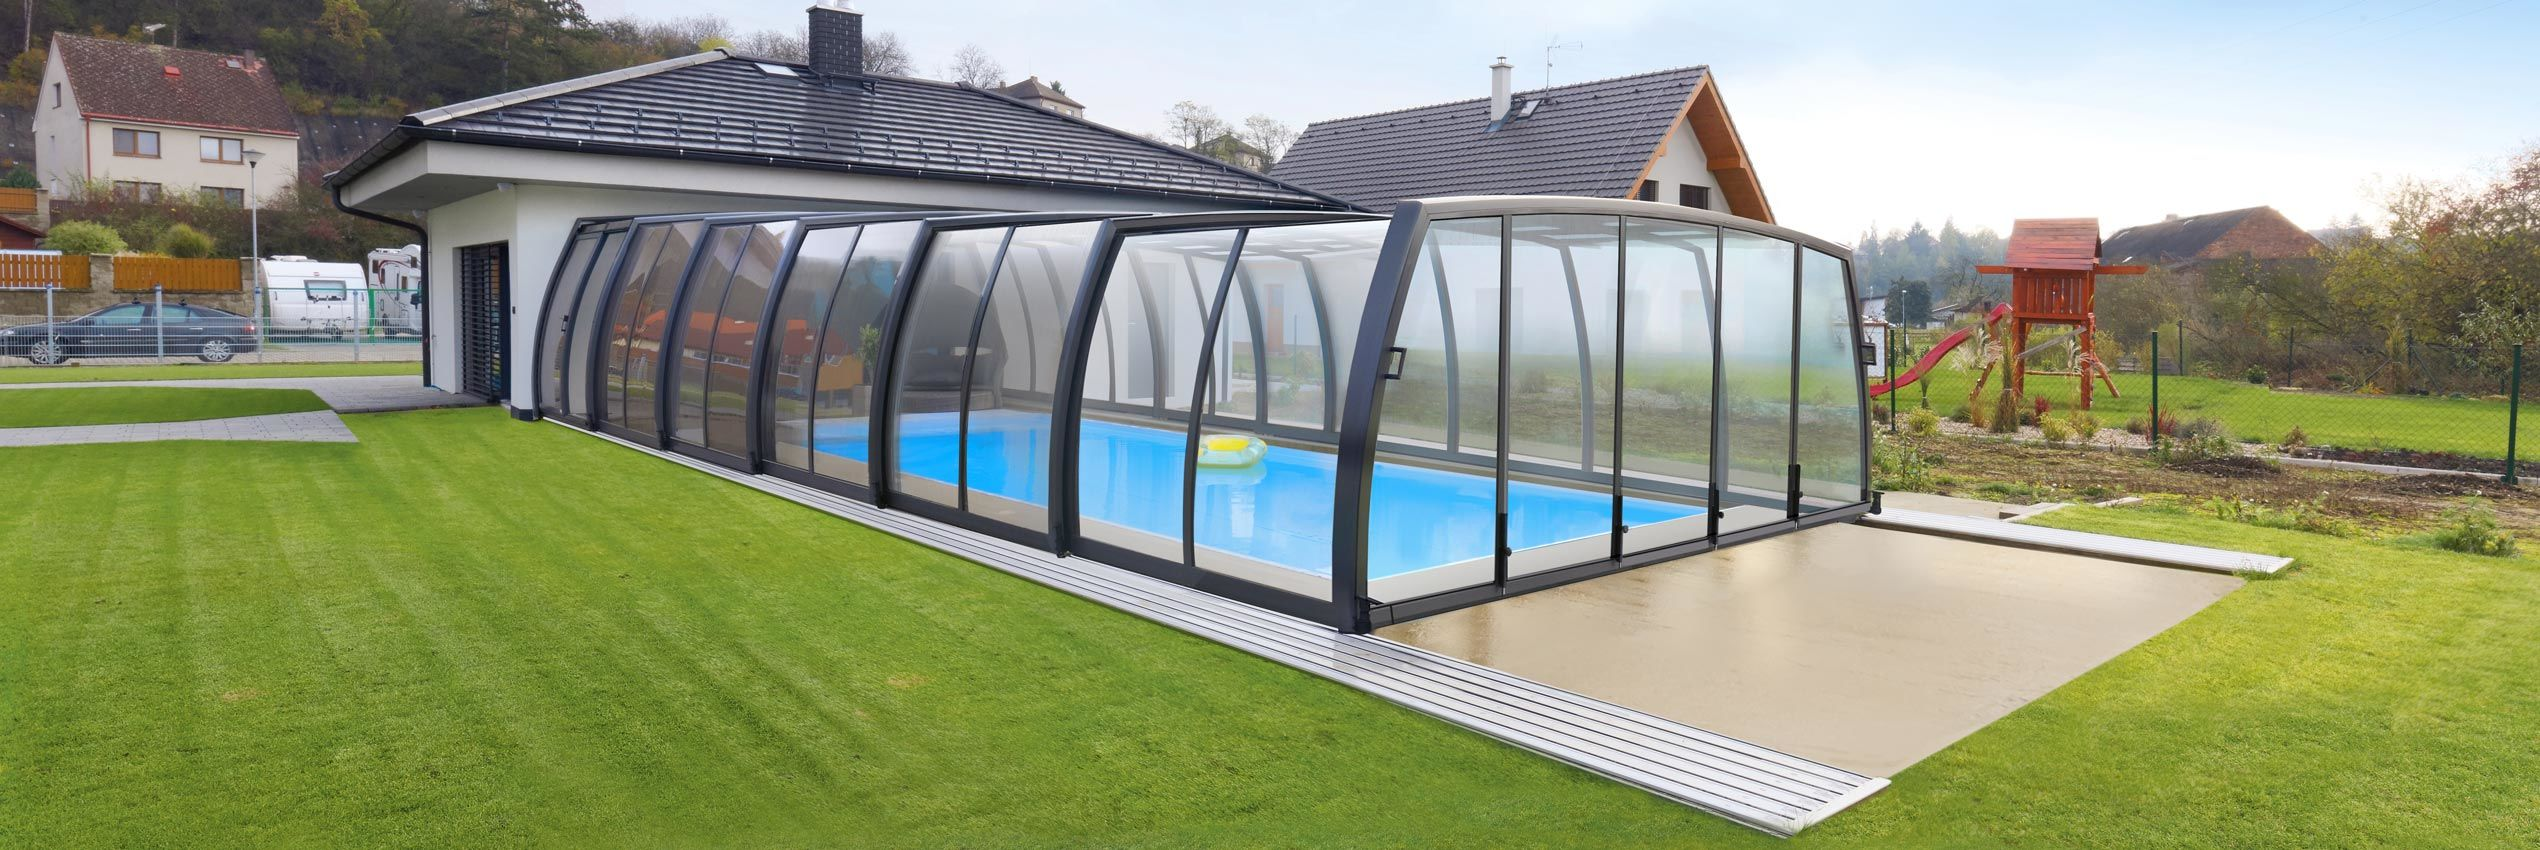 Retractable swimming pool enclosure omega sunrooms Retractable swimming pool enclosures